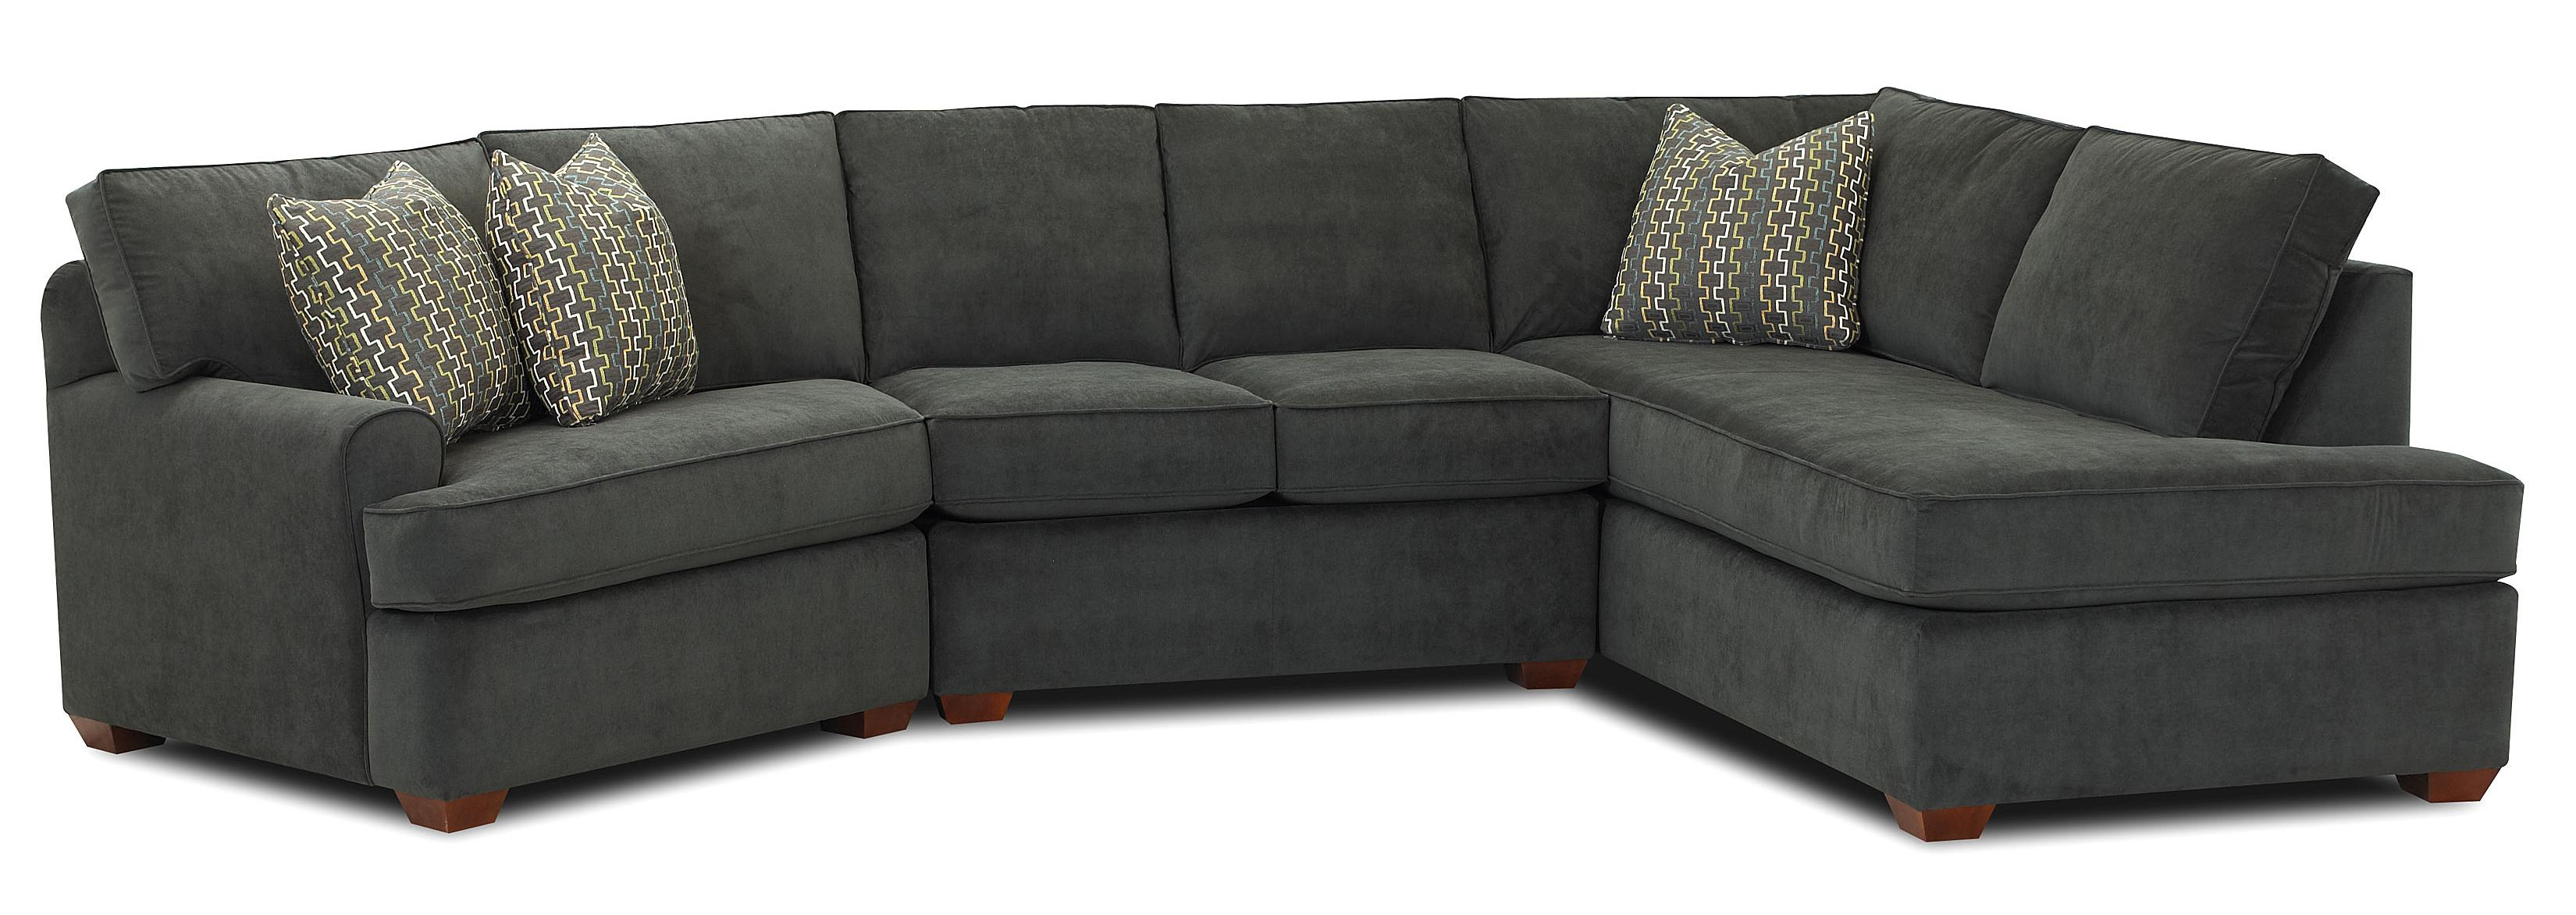 Genial Sectional Sofa